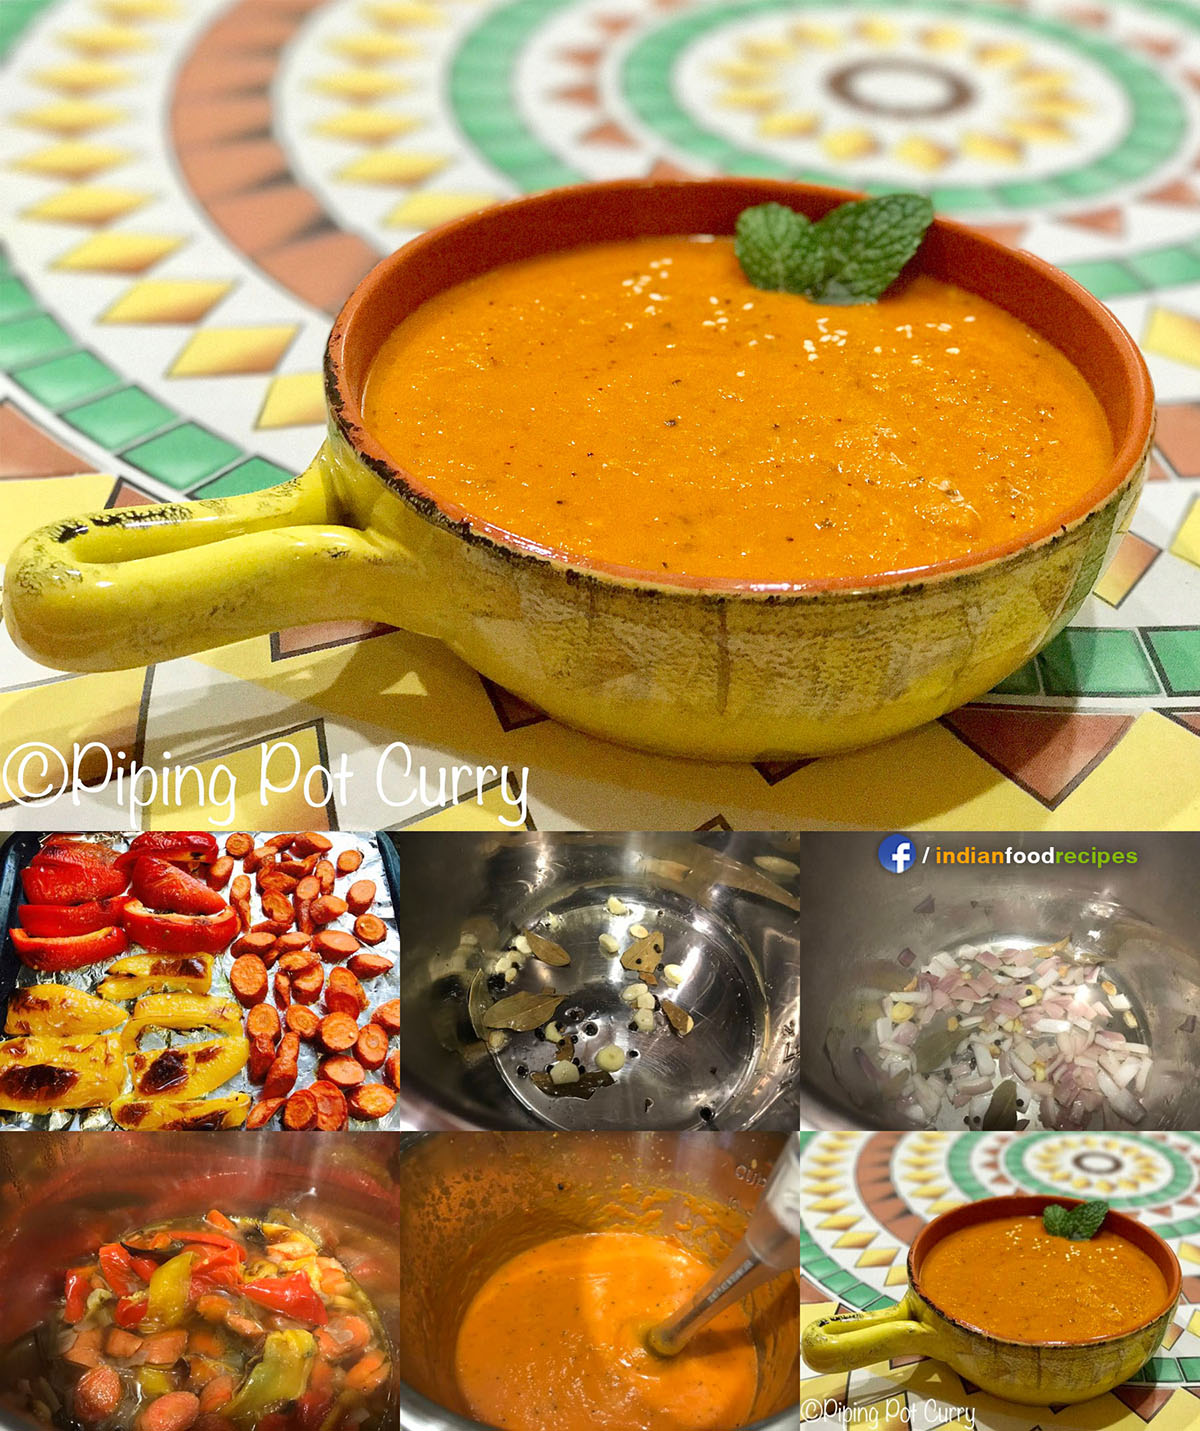 Roasted Carrot and Bell Pepper Soup recipe step by step